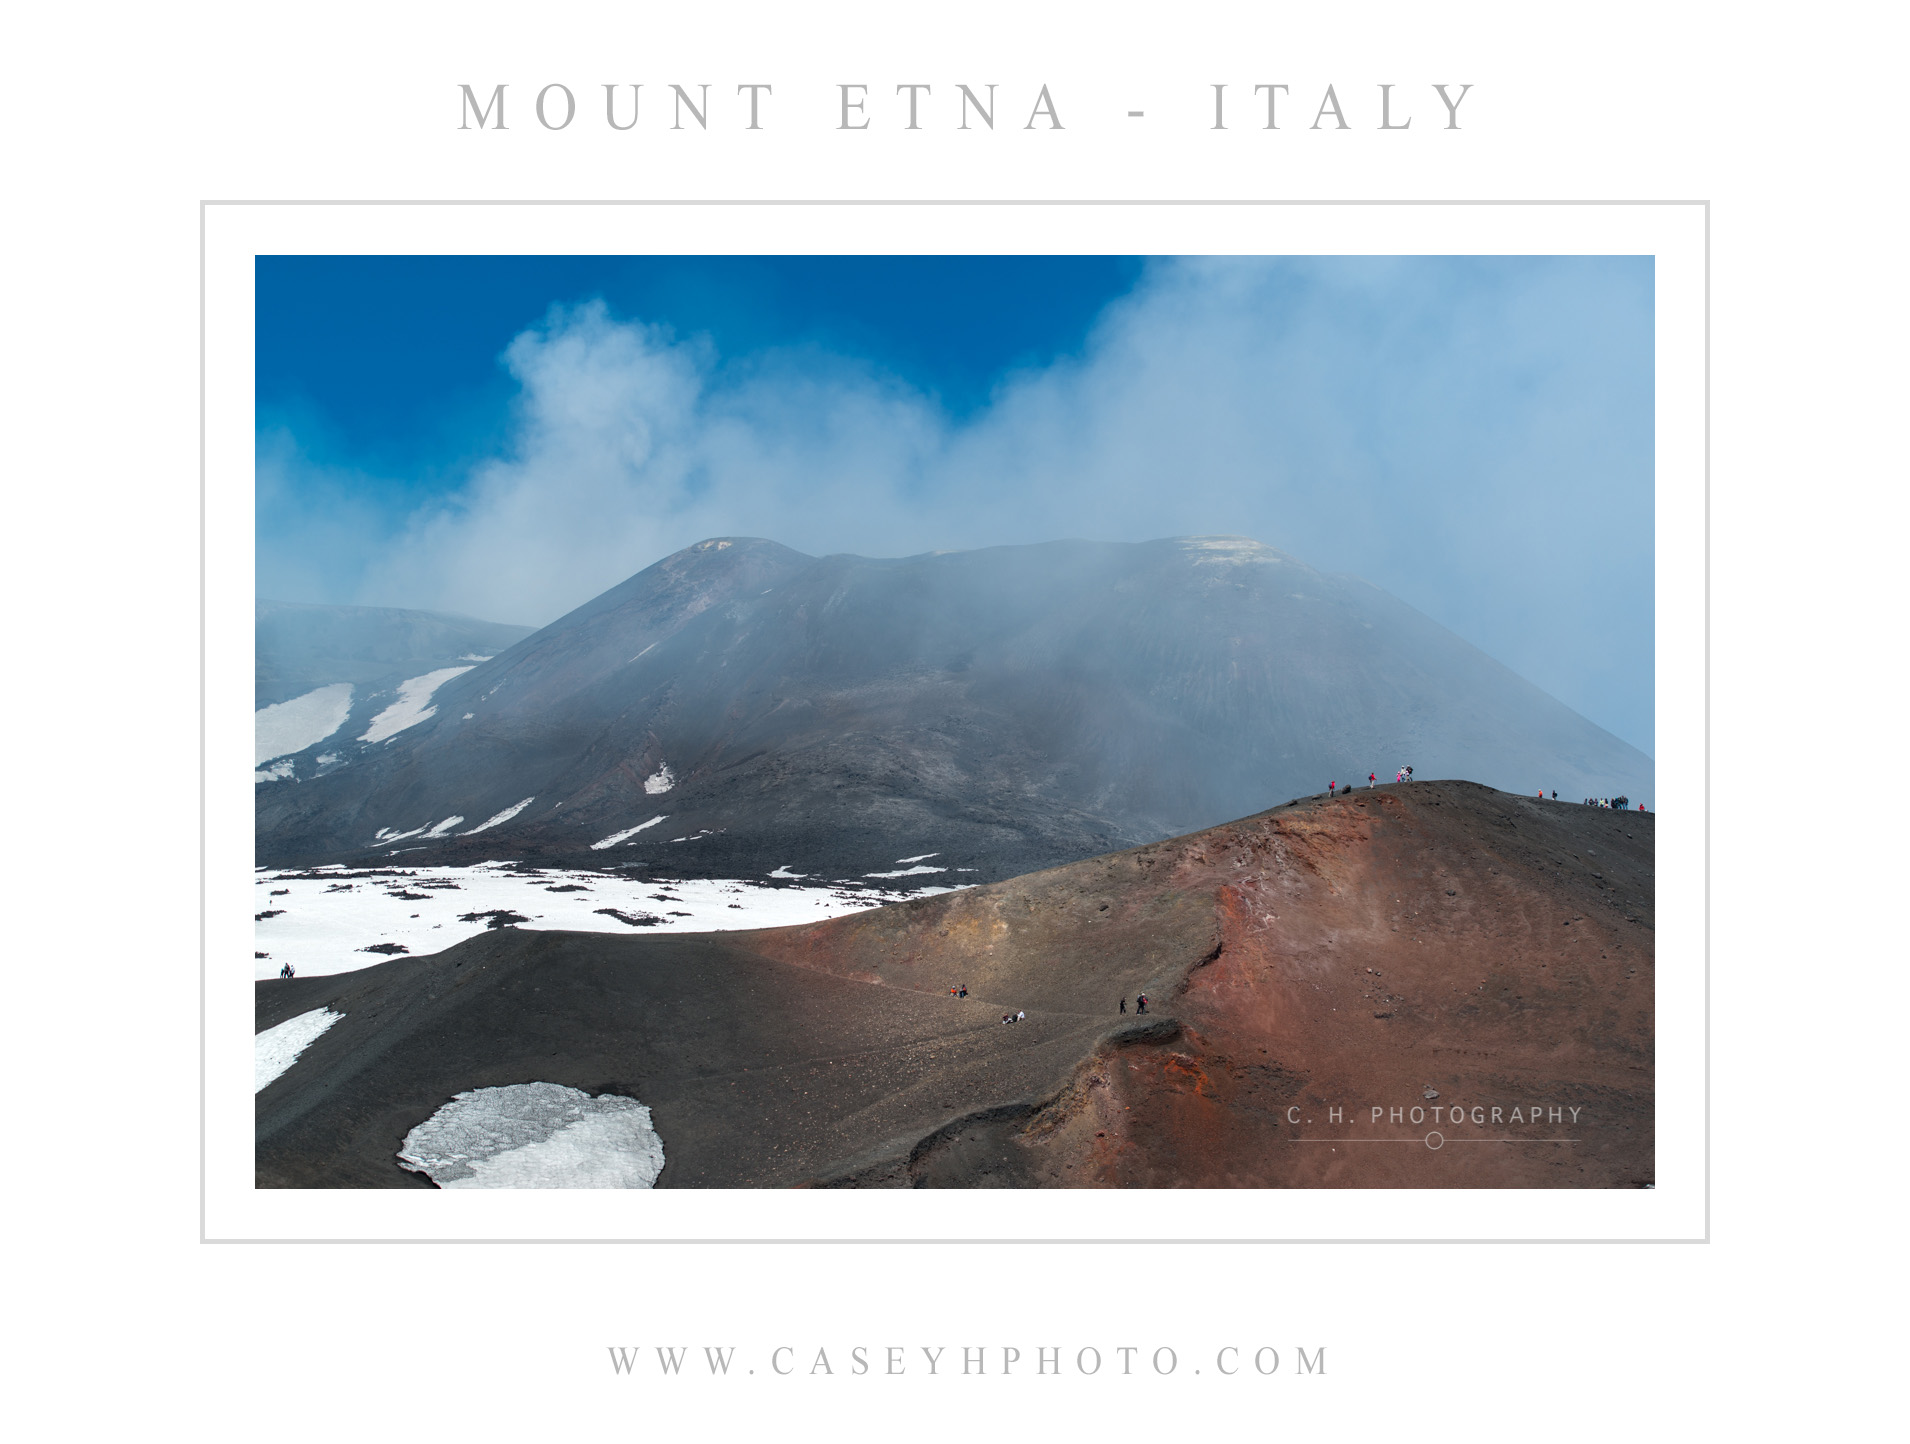 Mount Etna - Sicily - Italy